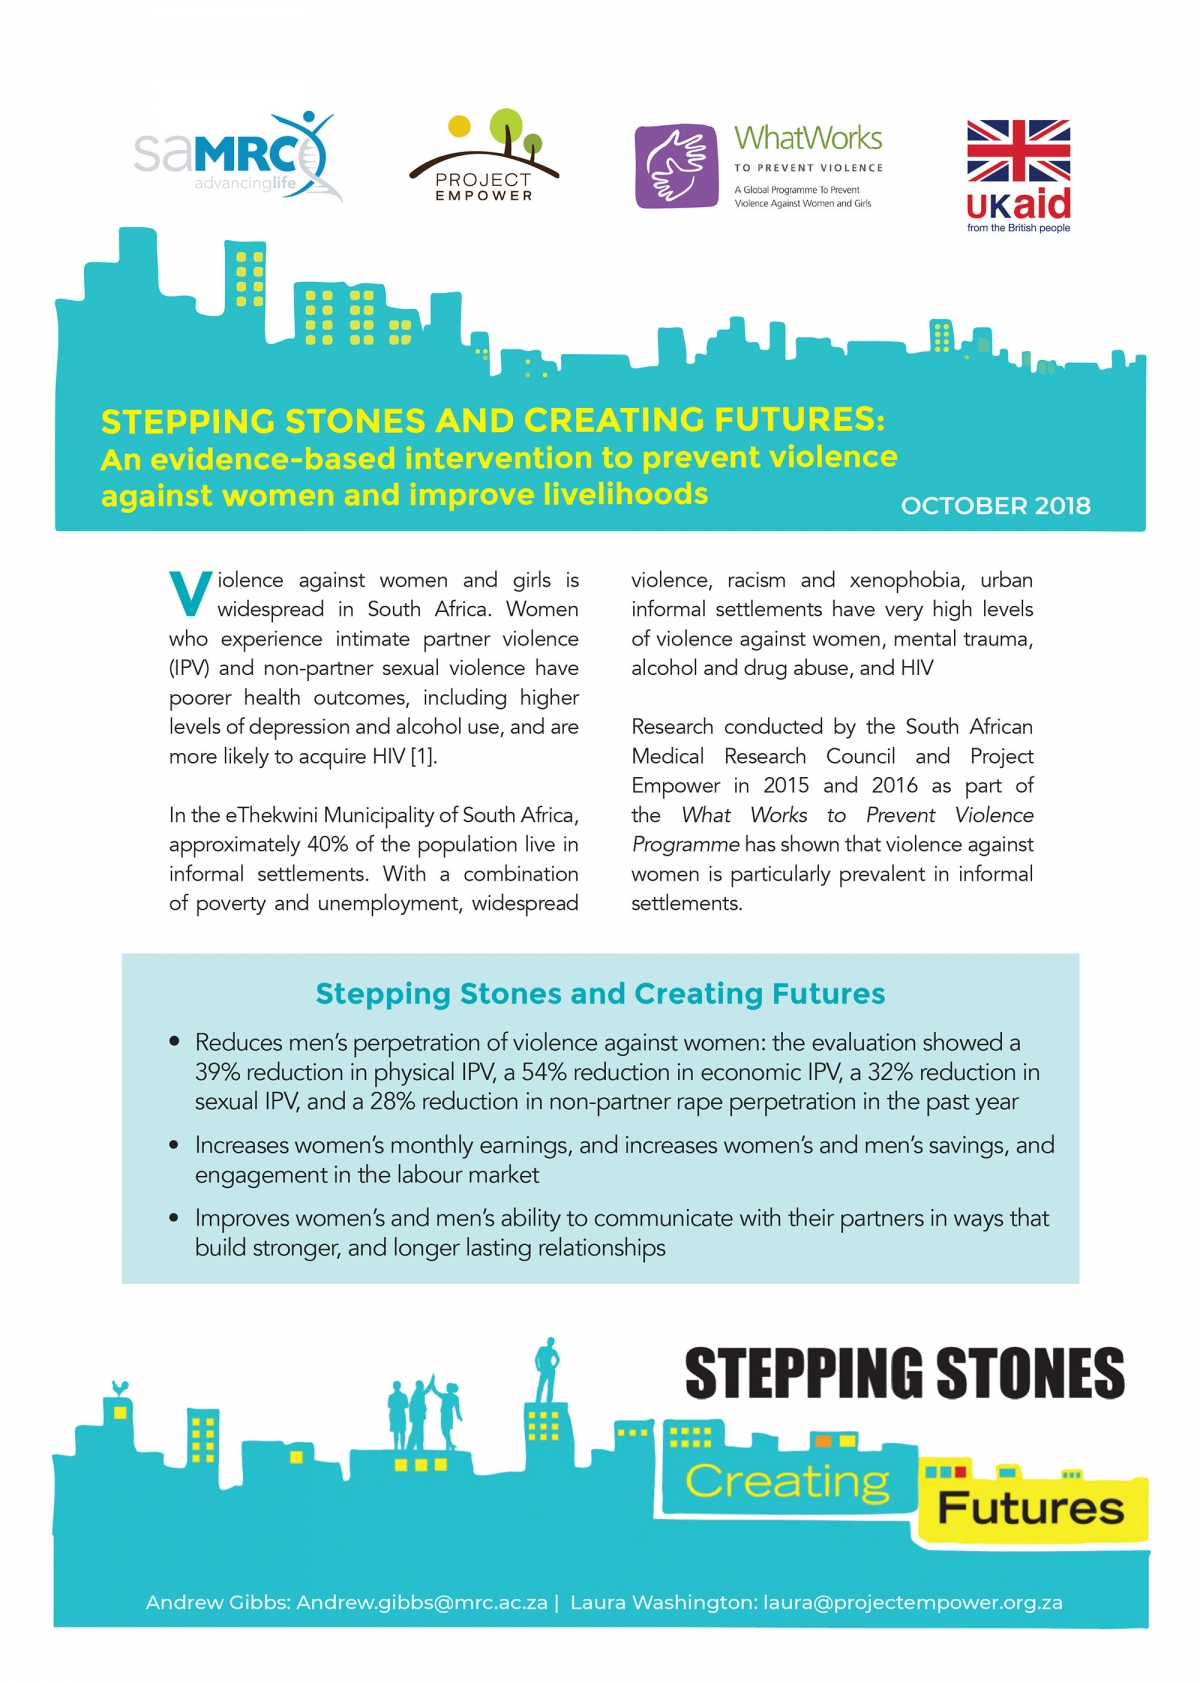 Stepping Stones and Creating Futures - An evidence-based intervention to prevent violence against women and improve livelihoods